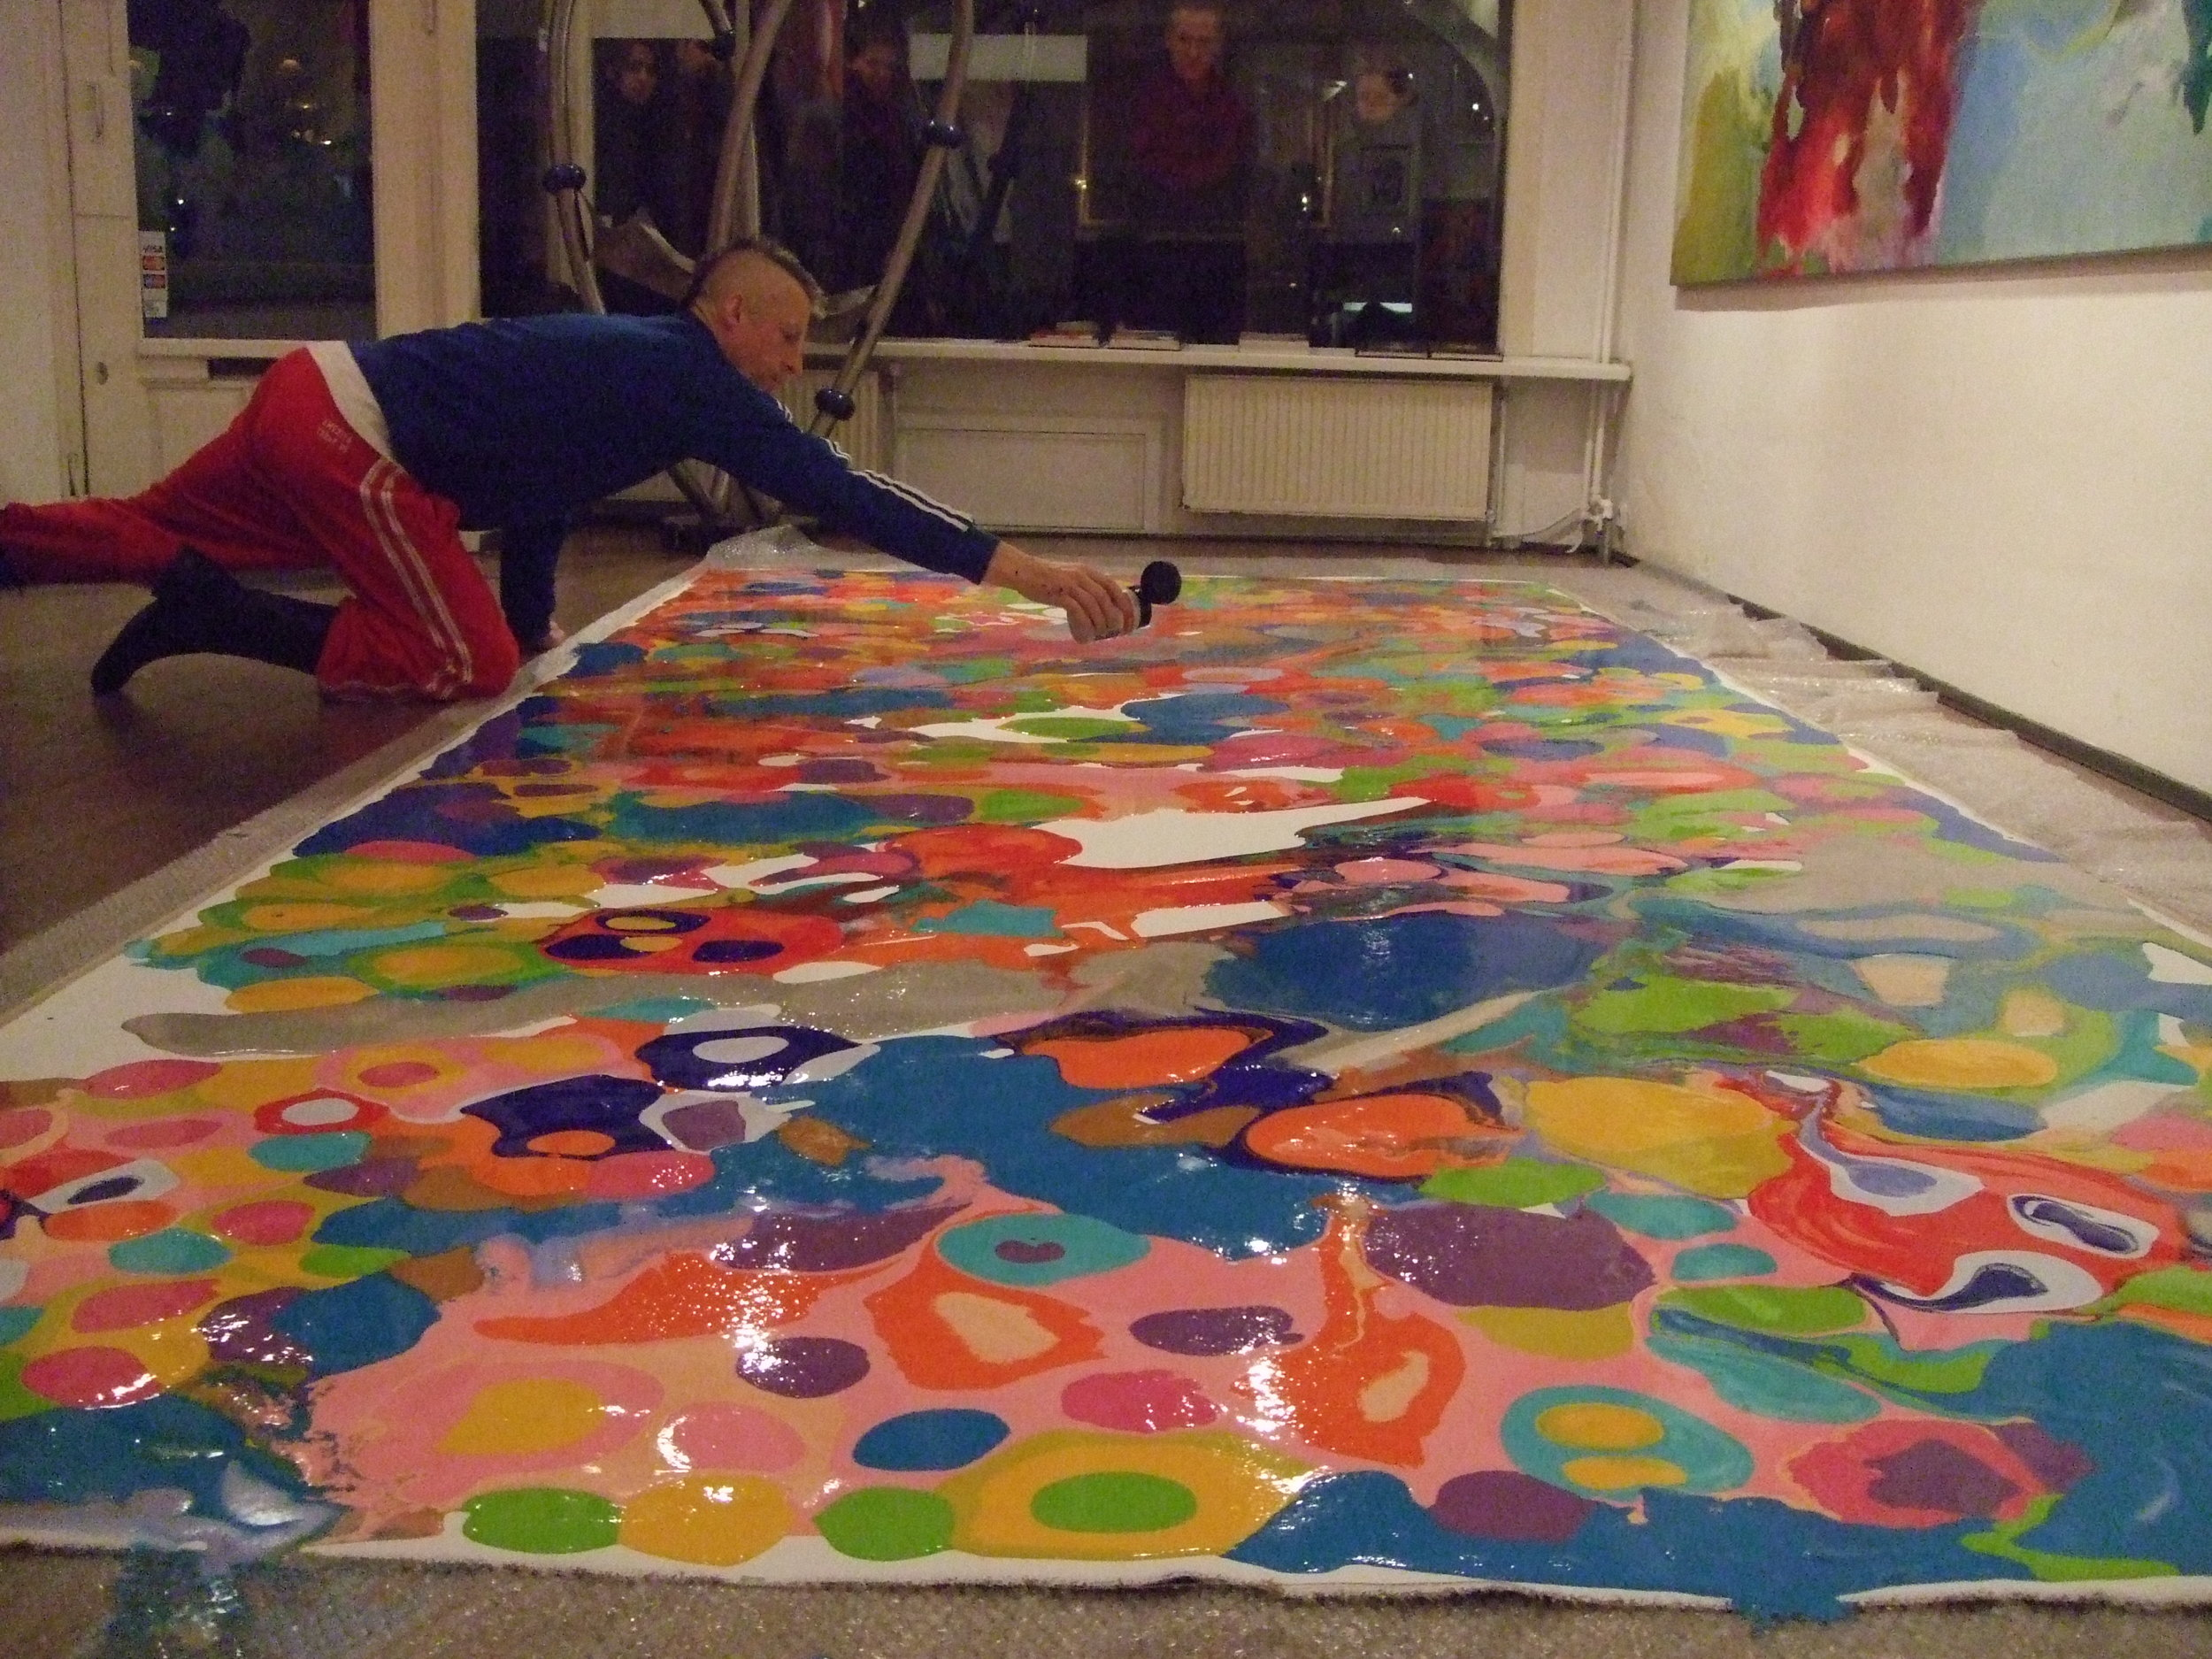 Harry van Gestel working on a big canvas in his gallery in Amsterdam, The Netherlands